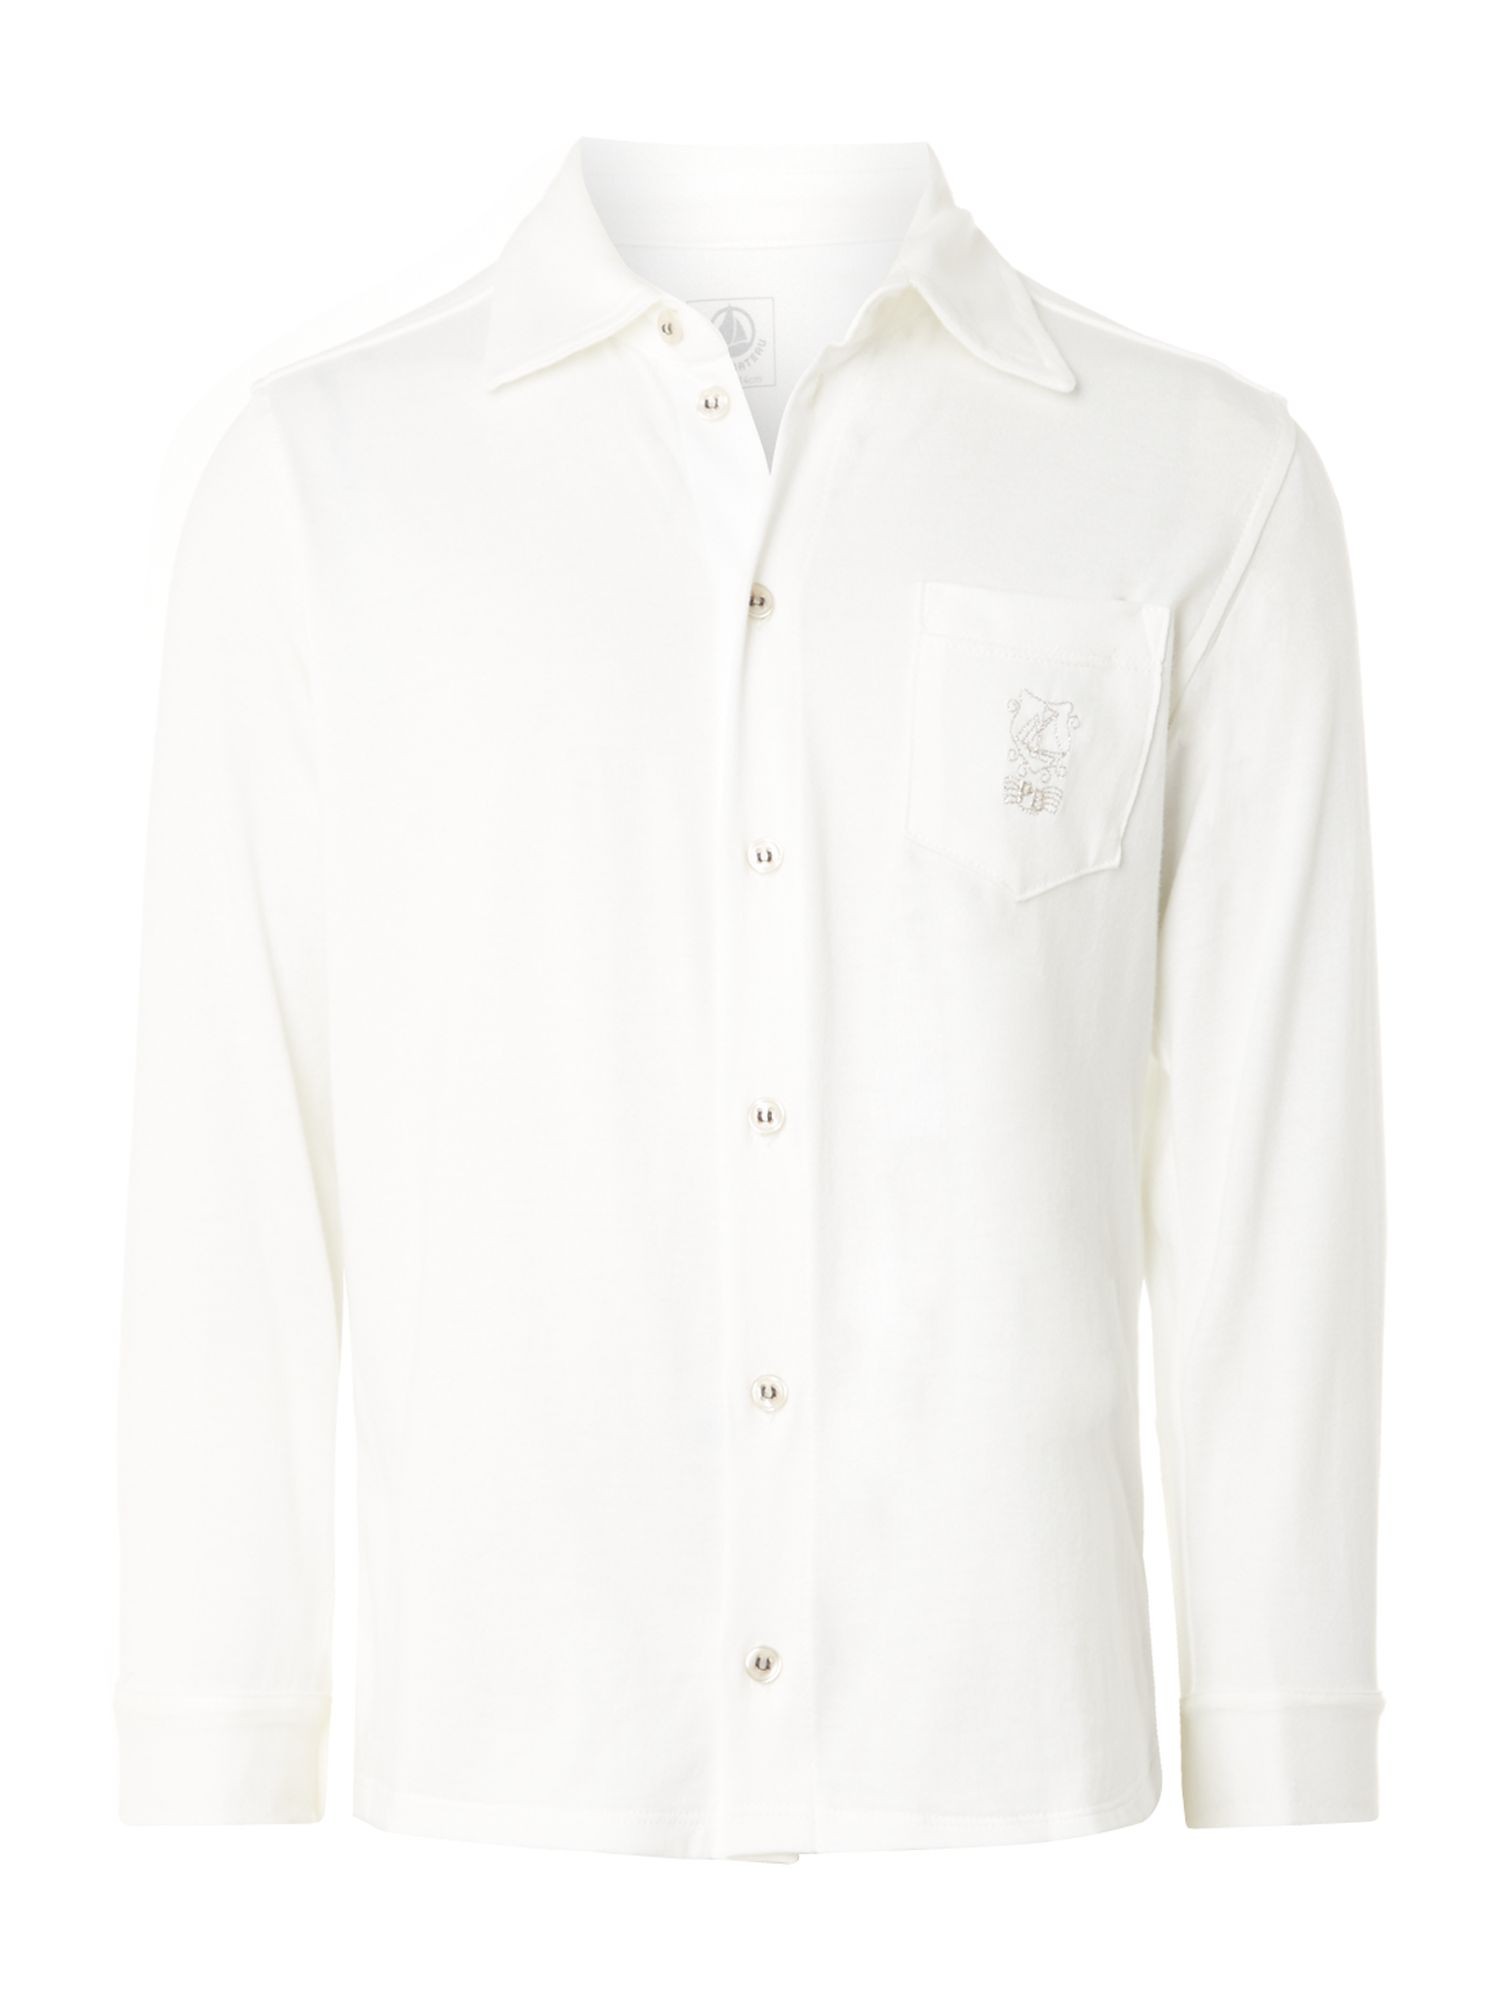 Boys cream light jersey shirt